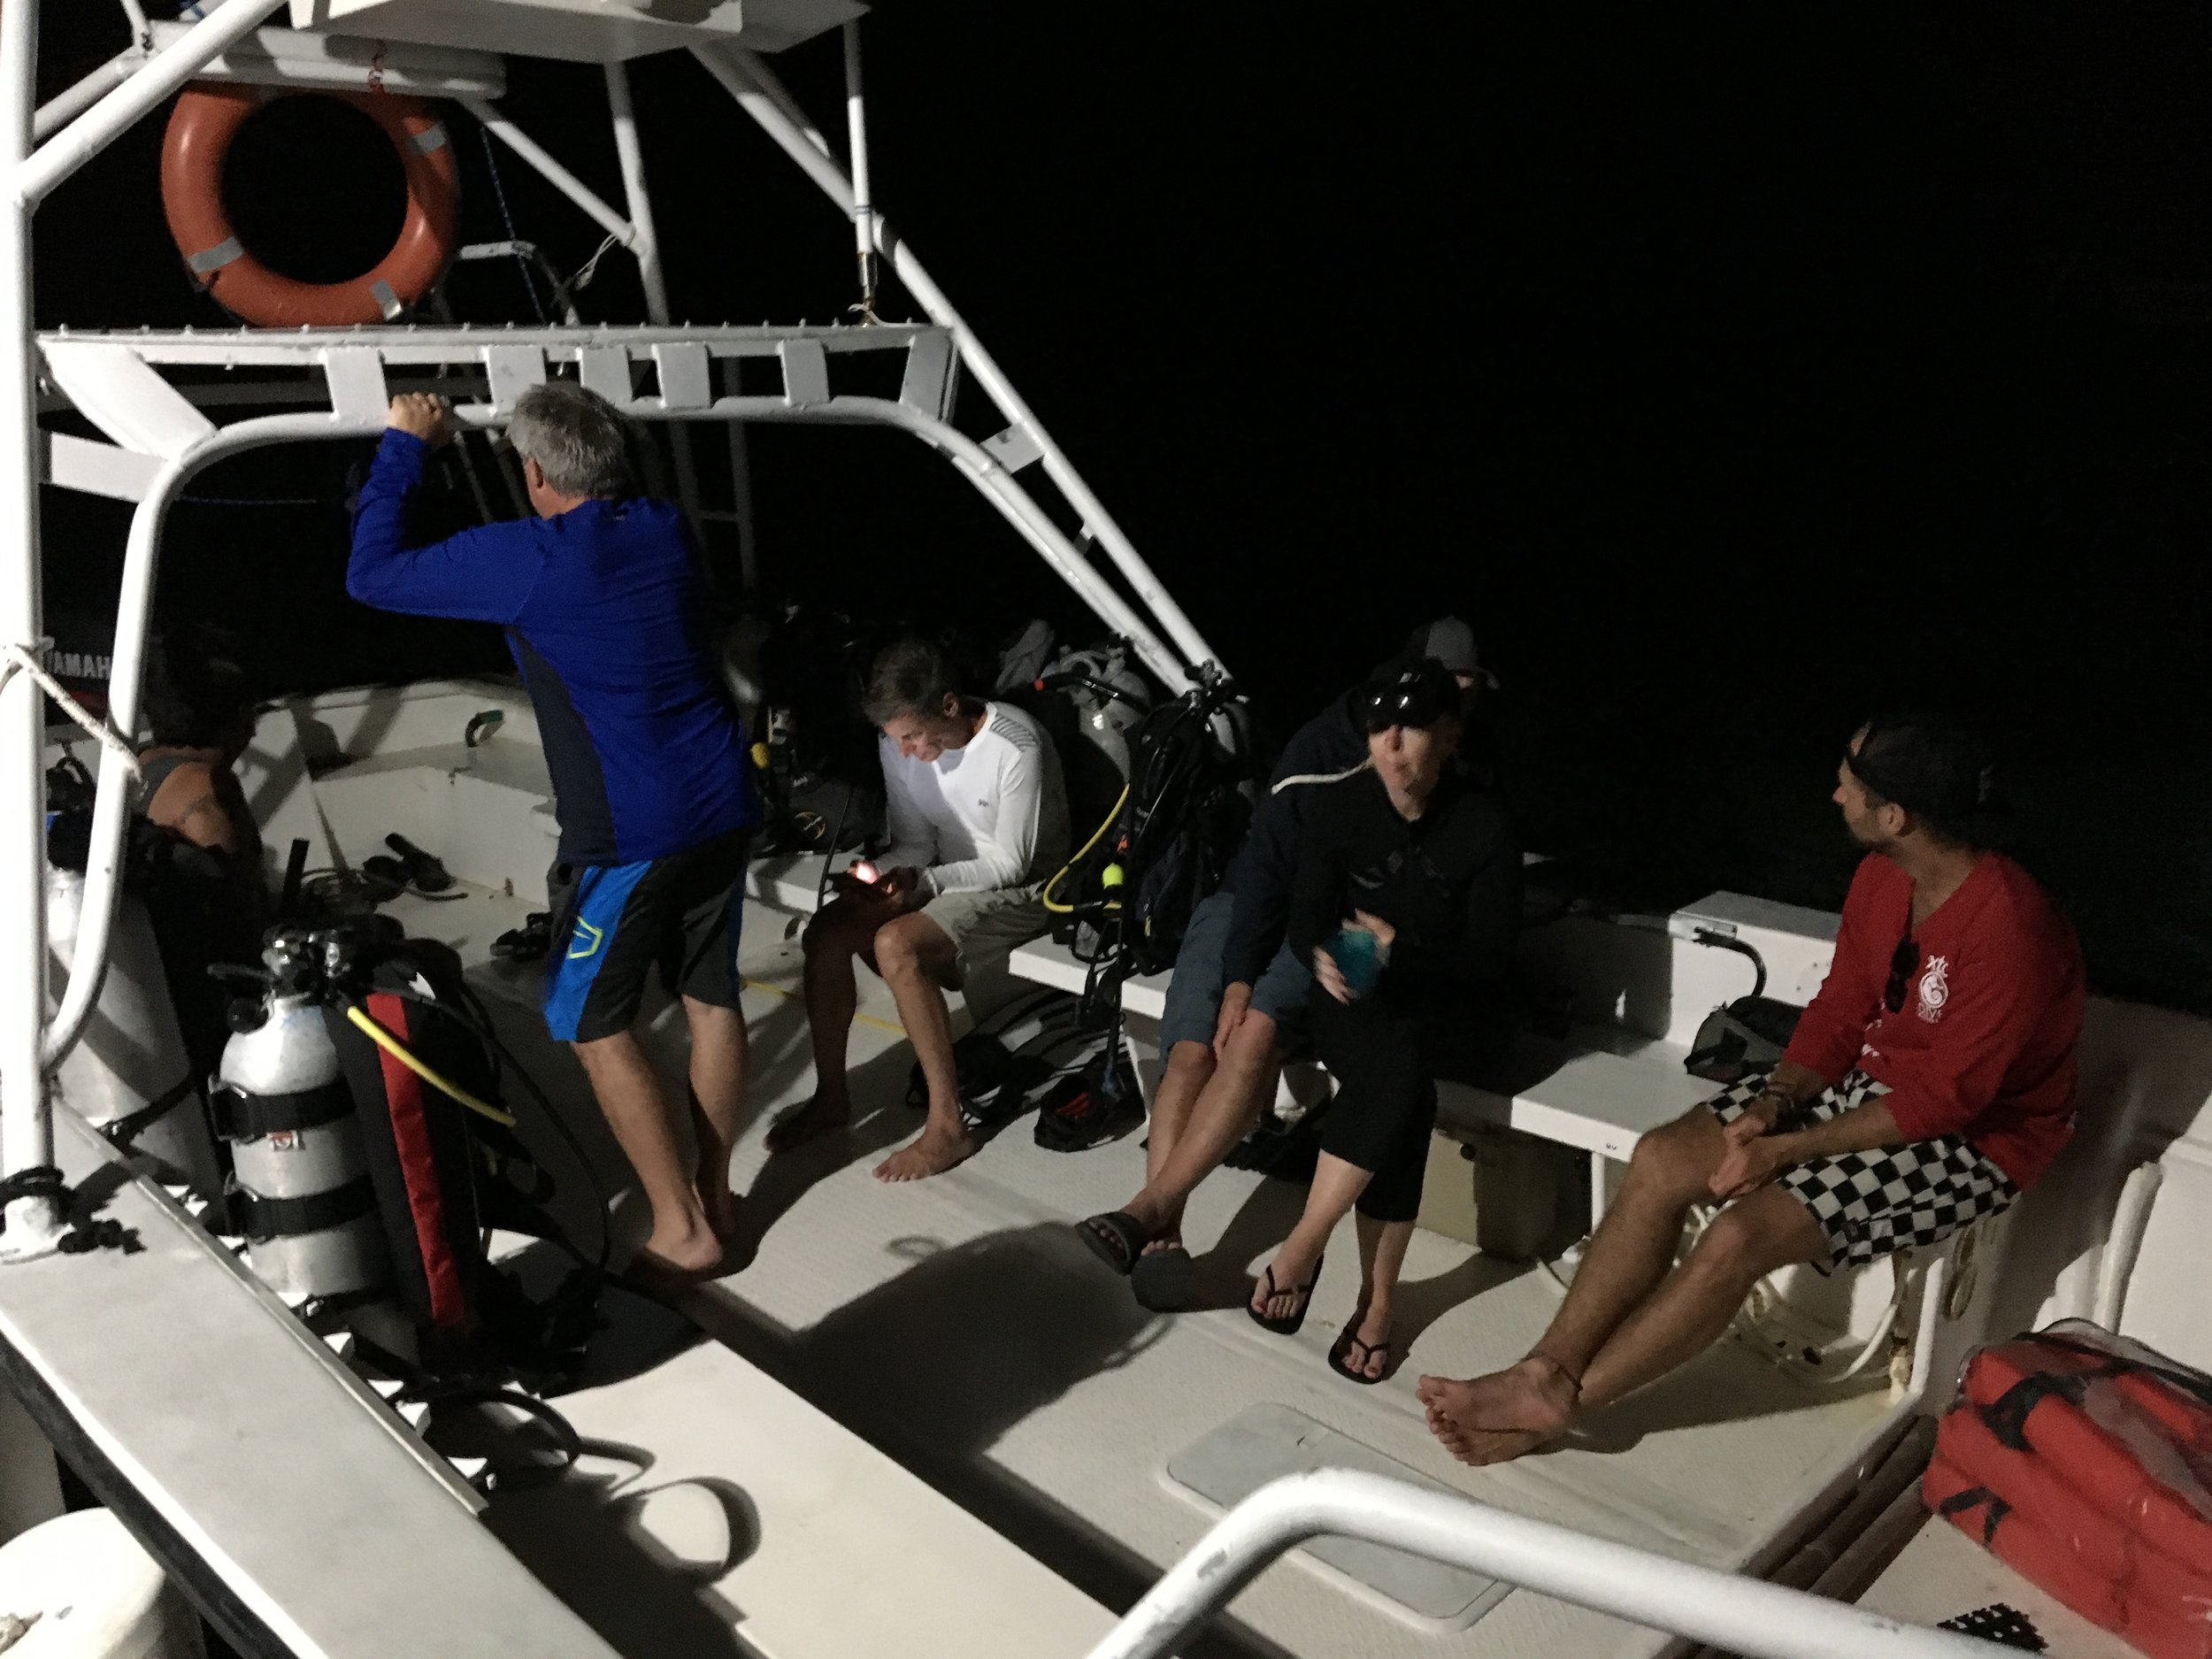 At night we all shared stories and talked crocs and sharks and adventures. Such a great time.